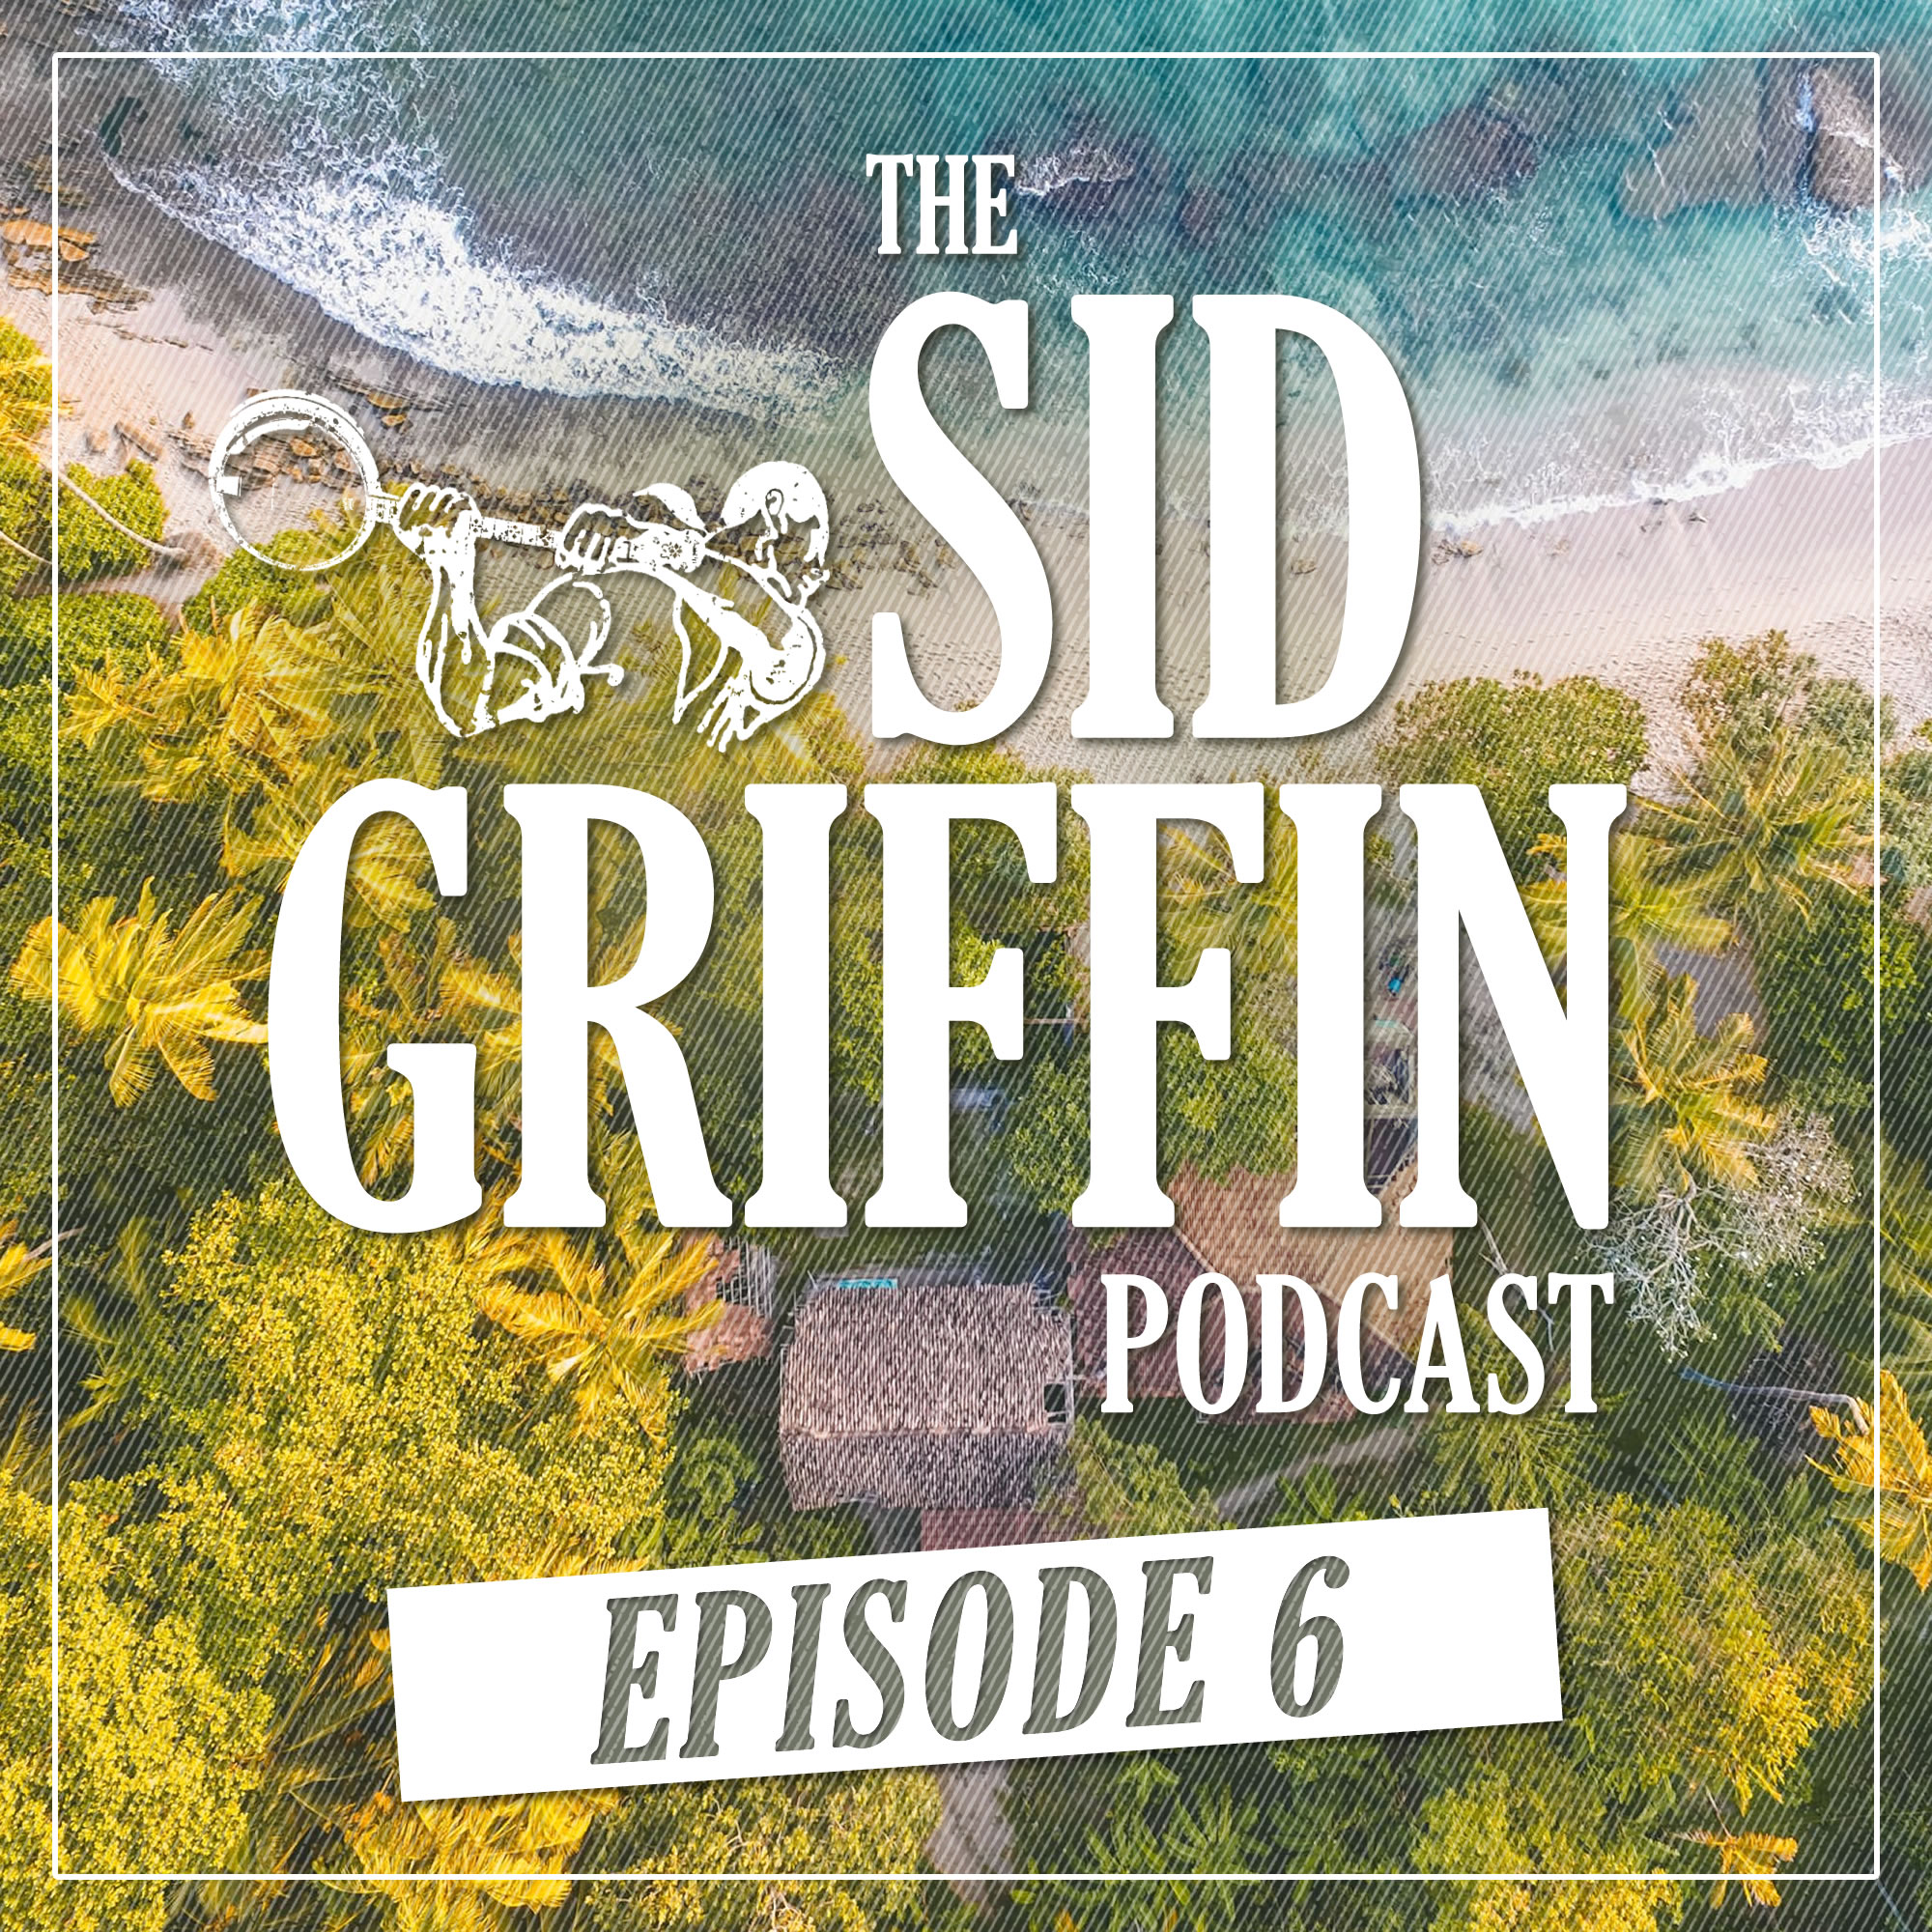 Call All Coal Porters, The Sid Griffin Podcast - No.6